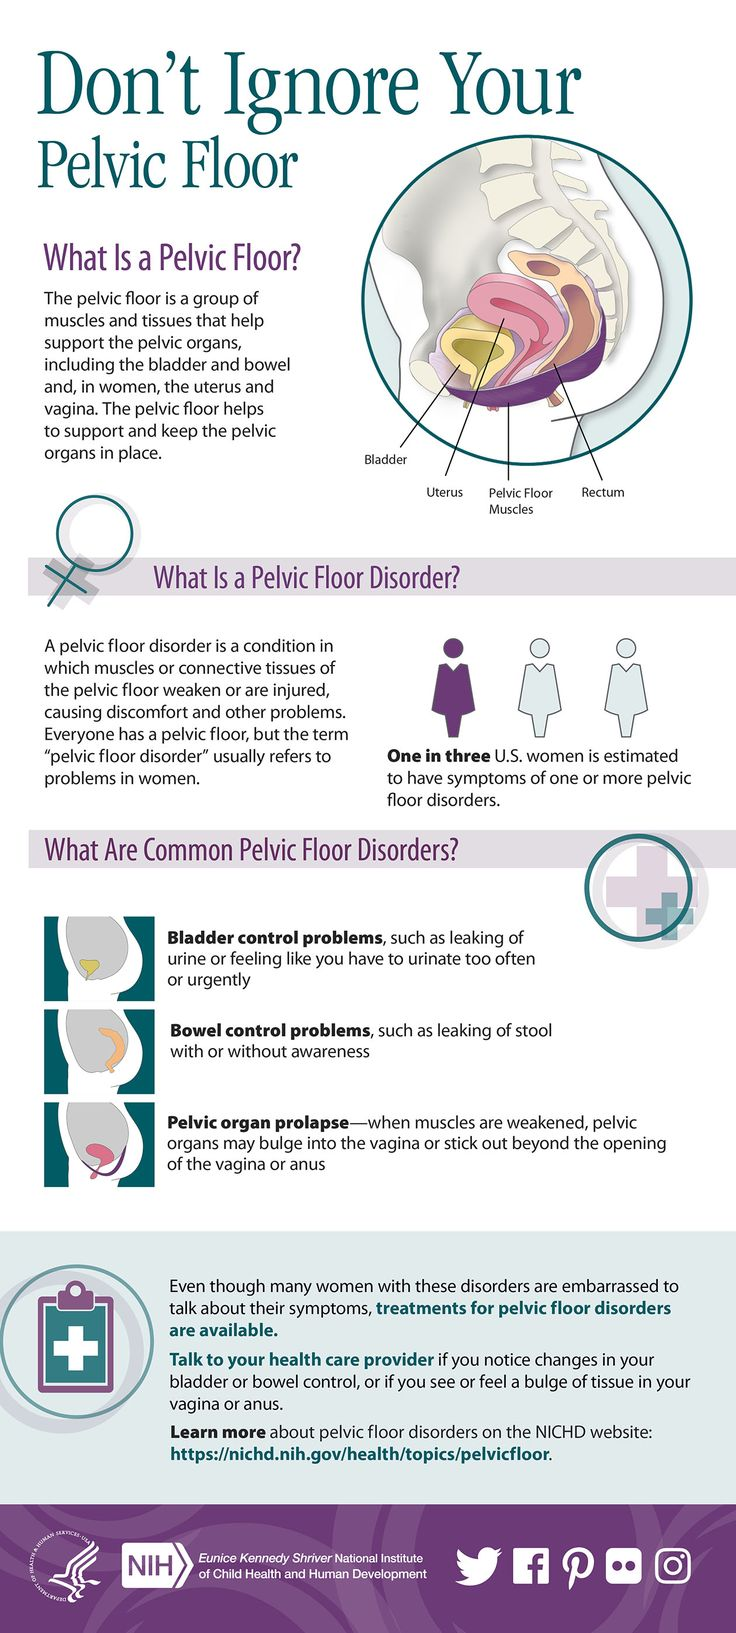 Don't ignore your pelvic floor! It's important to talk to your health care provider if you experience pelvic floor symptoms. #PelvicFloor #PelvicFloorDisorders #PelvicFloorMuscles #PFD